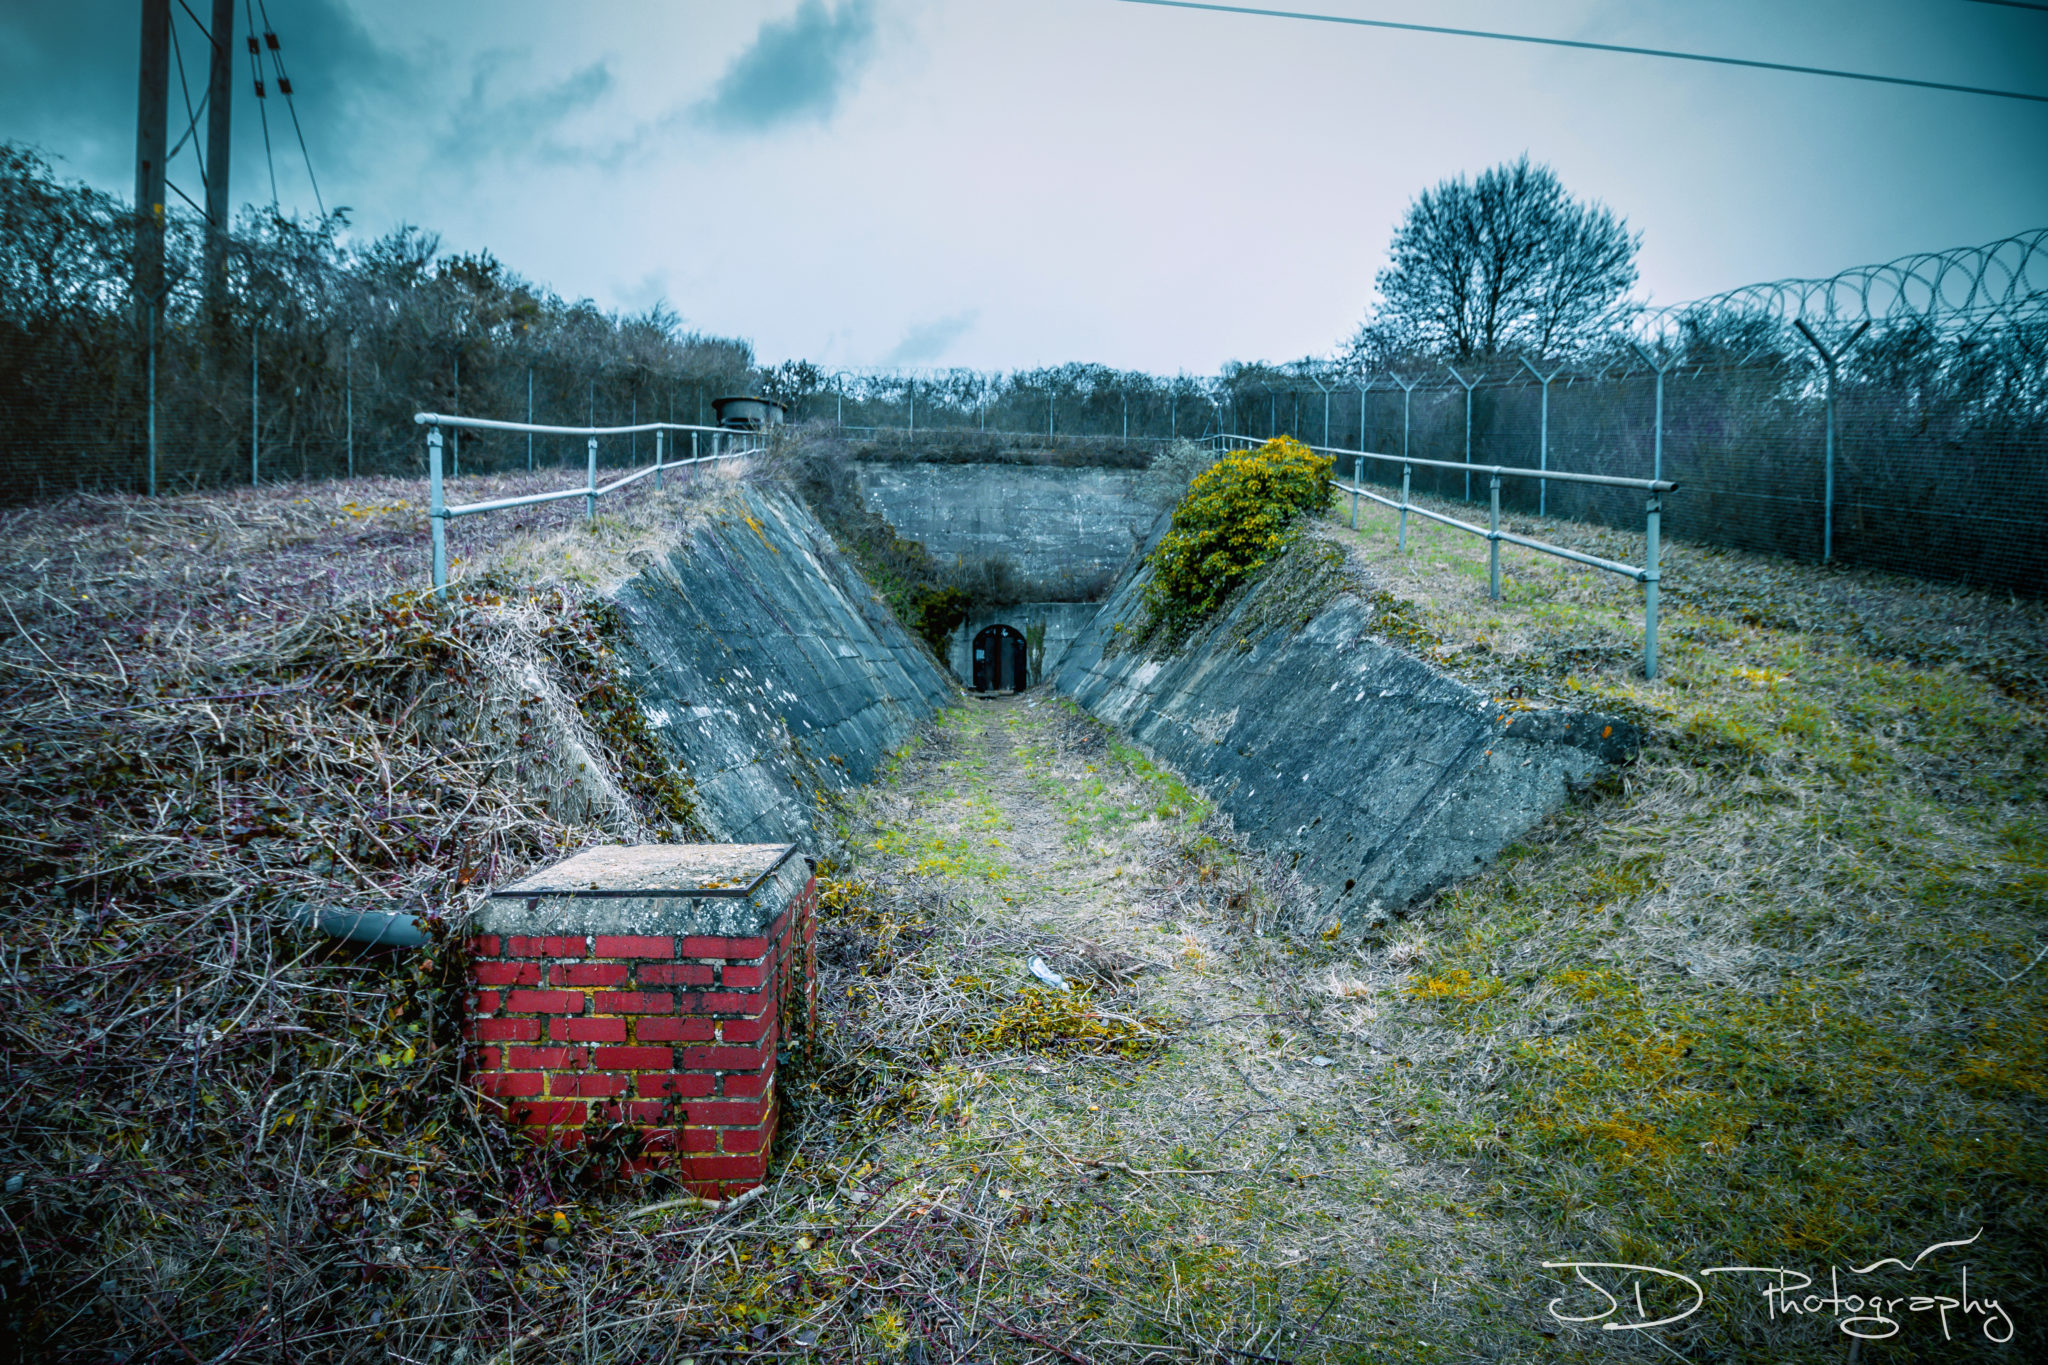 Portsmouth Fuel Bunker Abandoned WW2